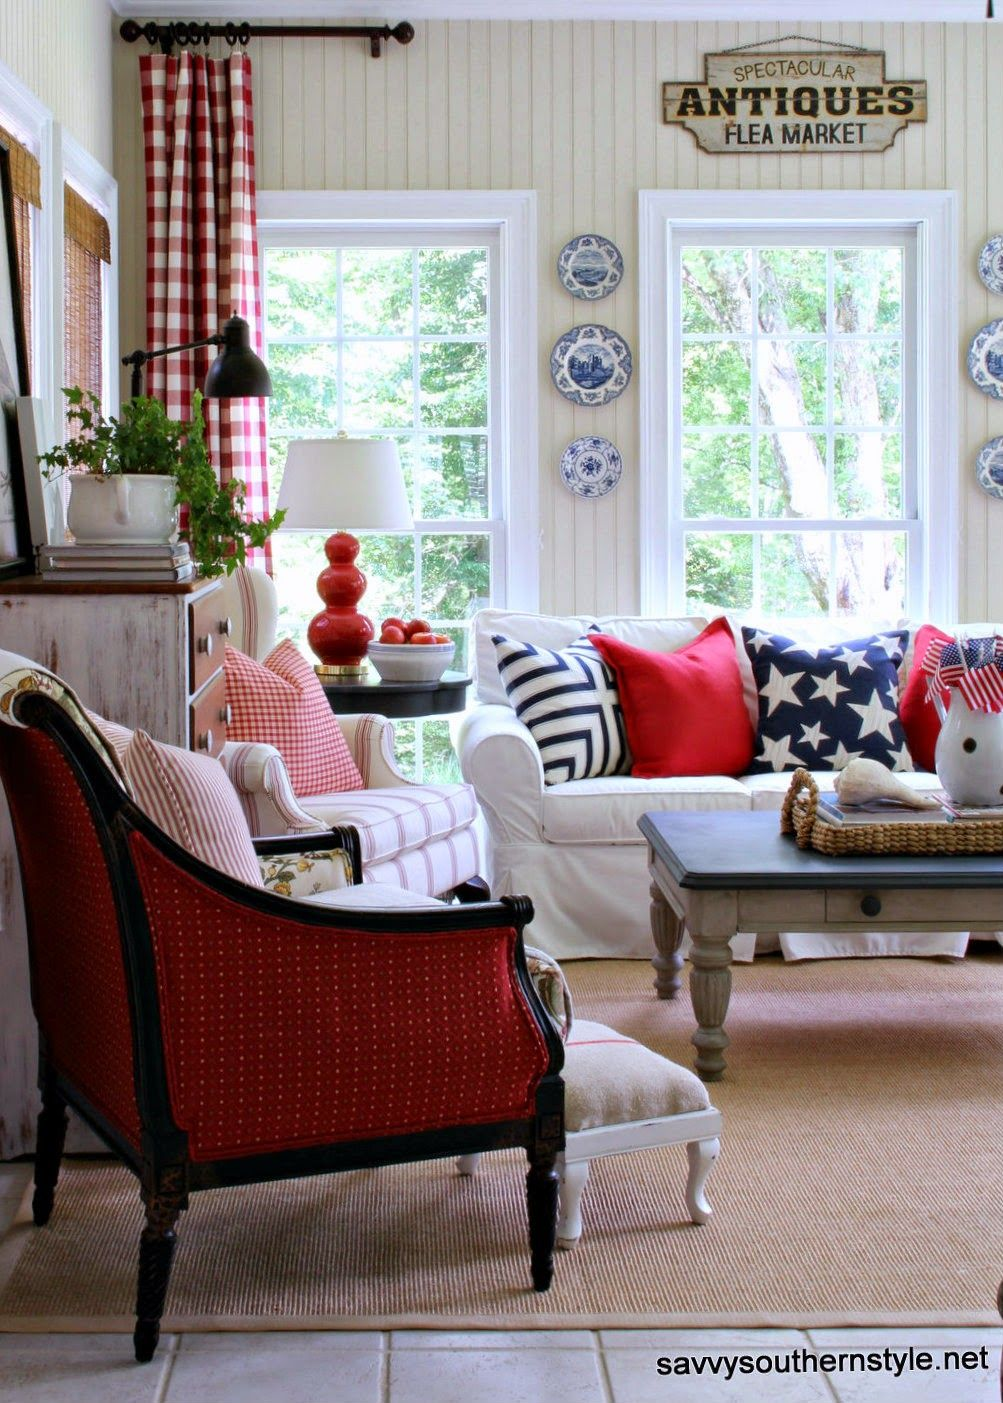 Living Room Southern Style Decor 1000 ideas about americana living rooms on pinterest upright piano room and primitive room